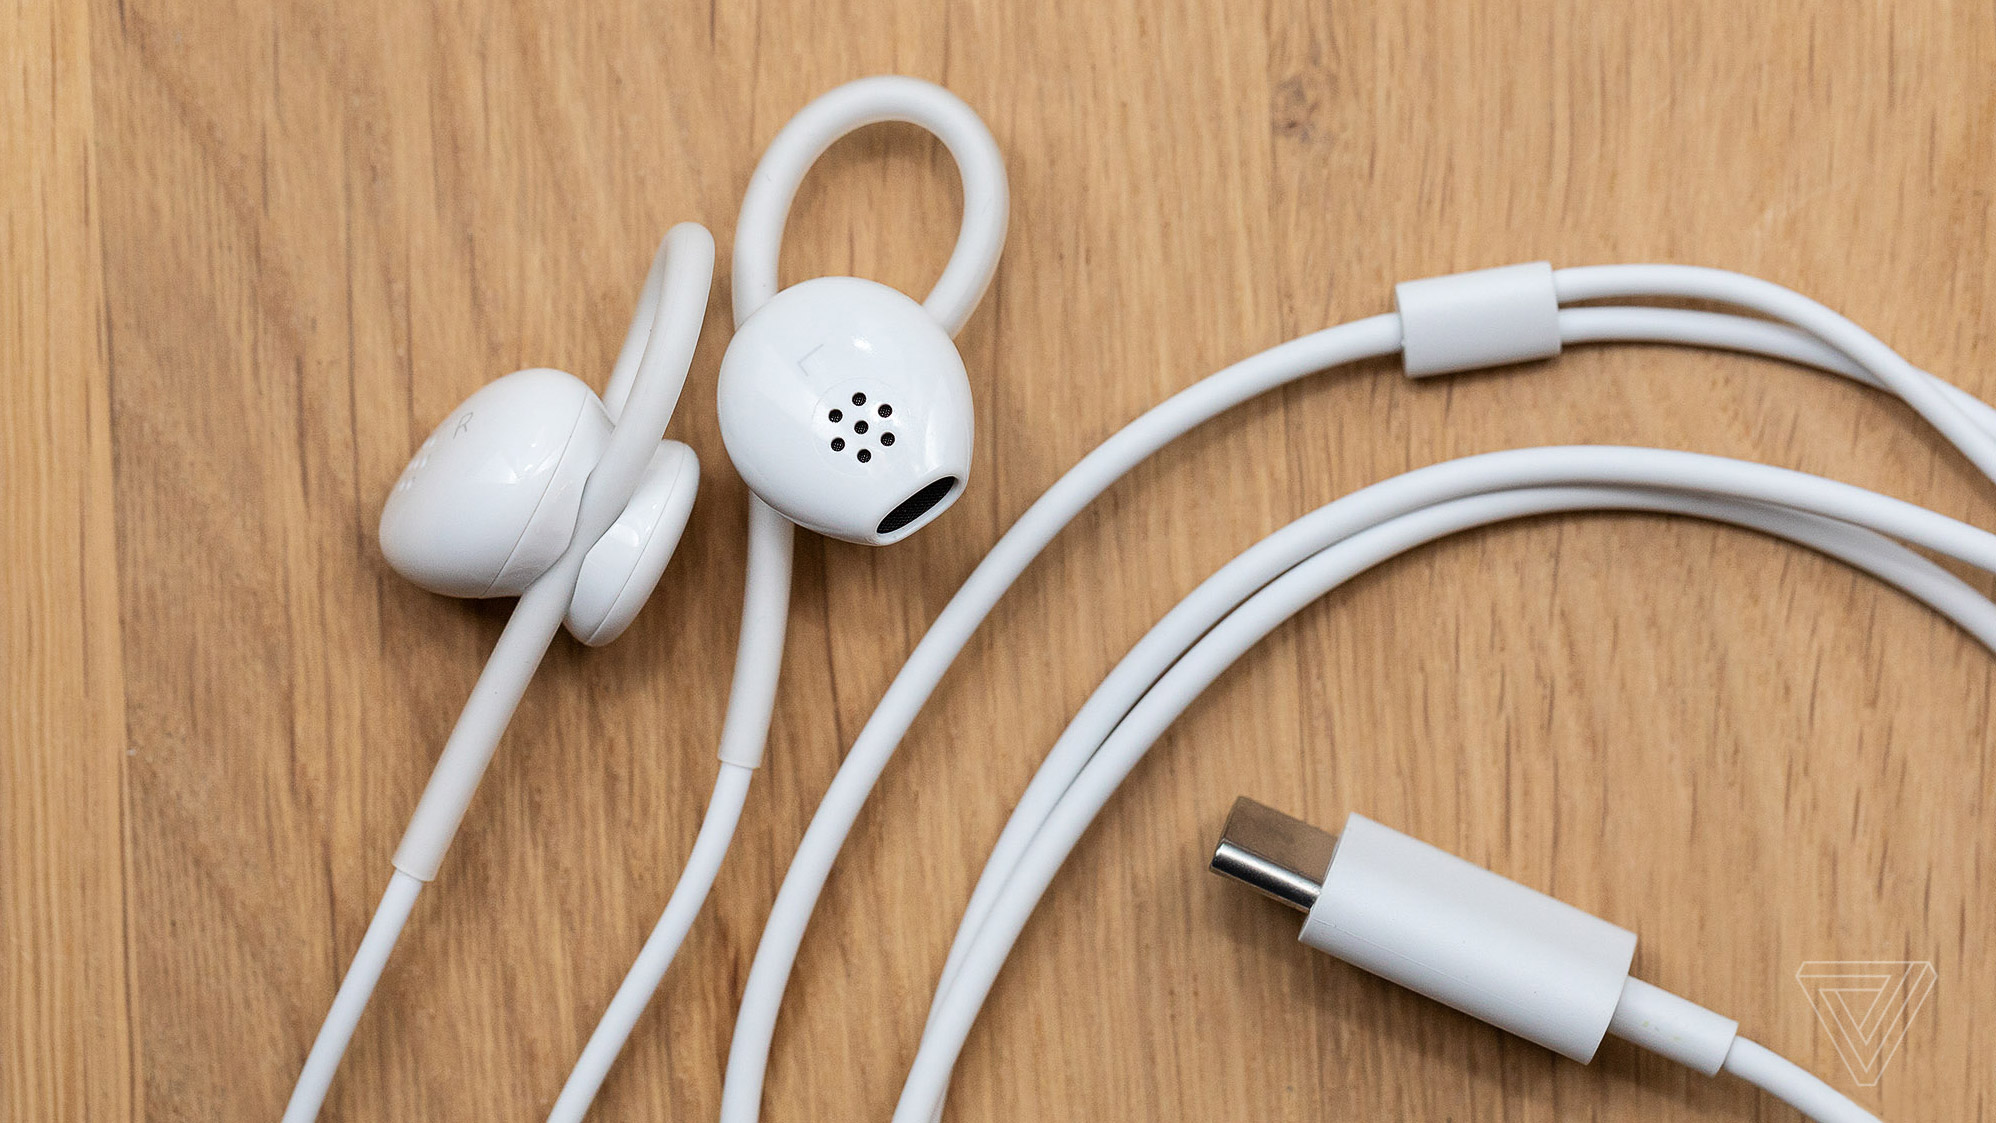 hight resolution of google pixel usb c earbuds review more than okay google